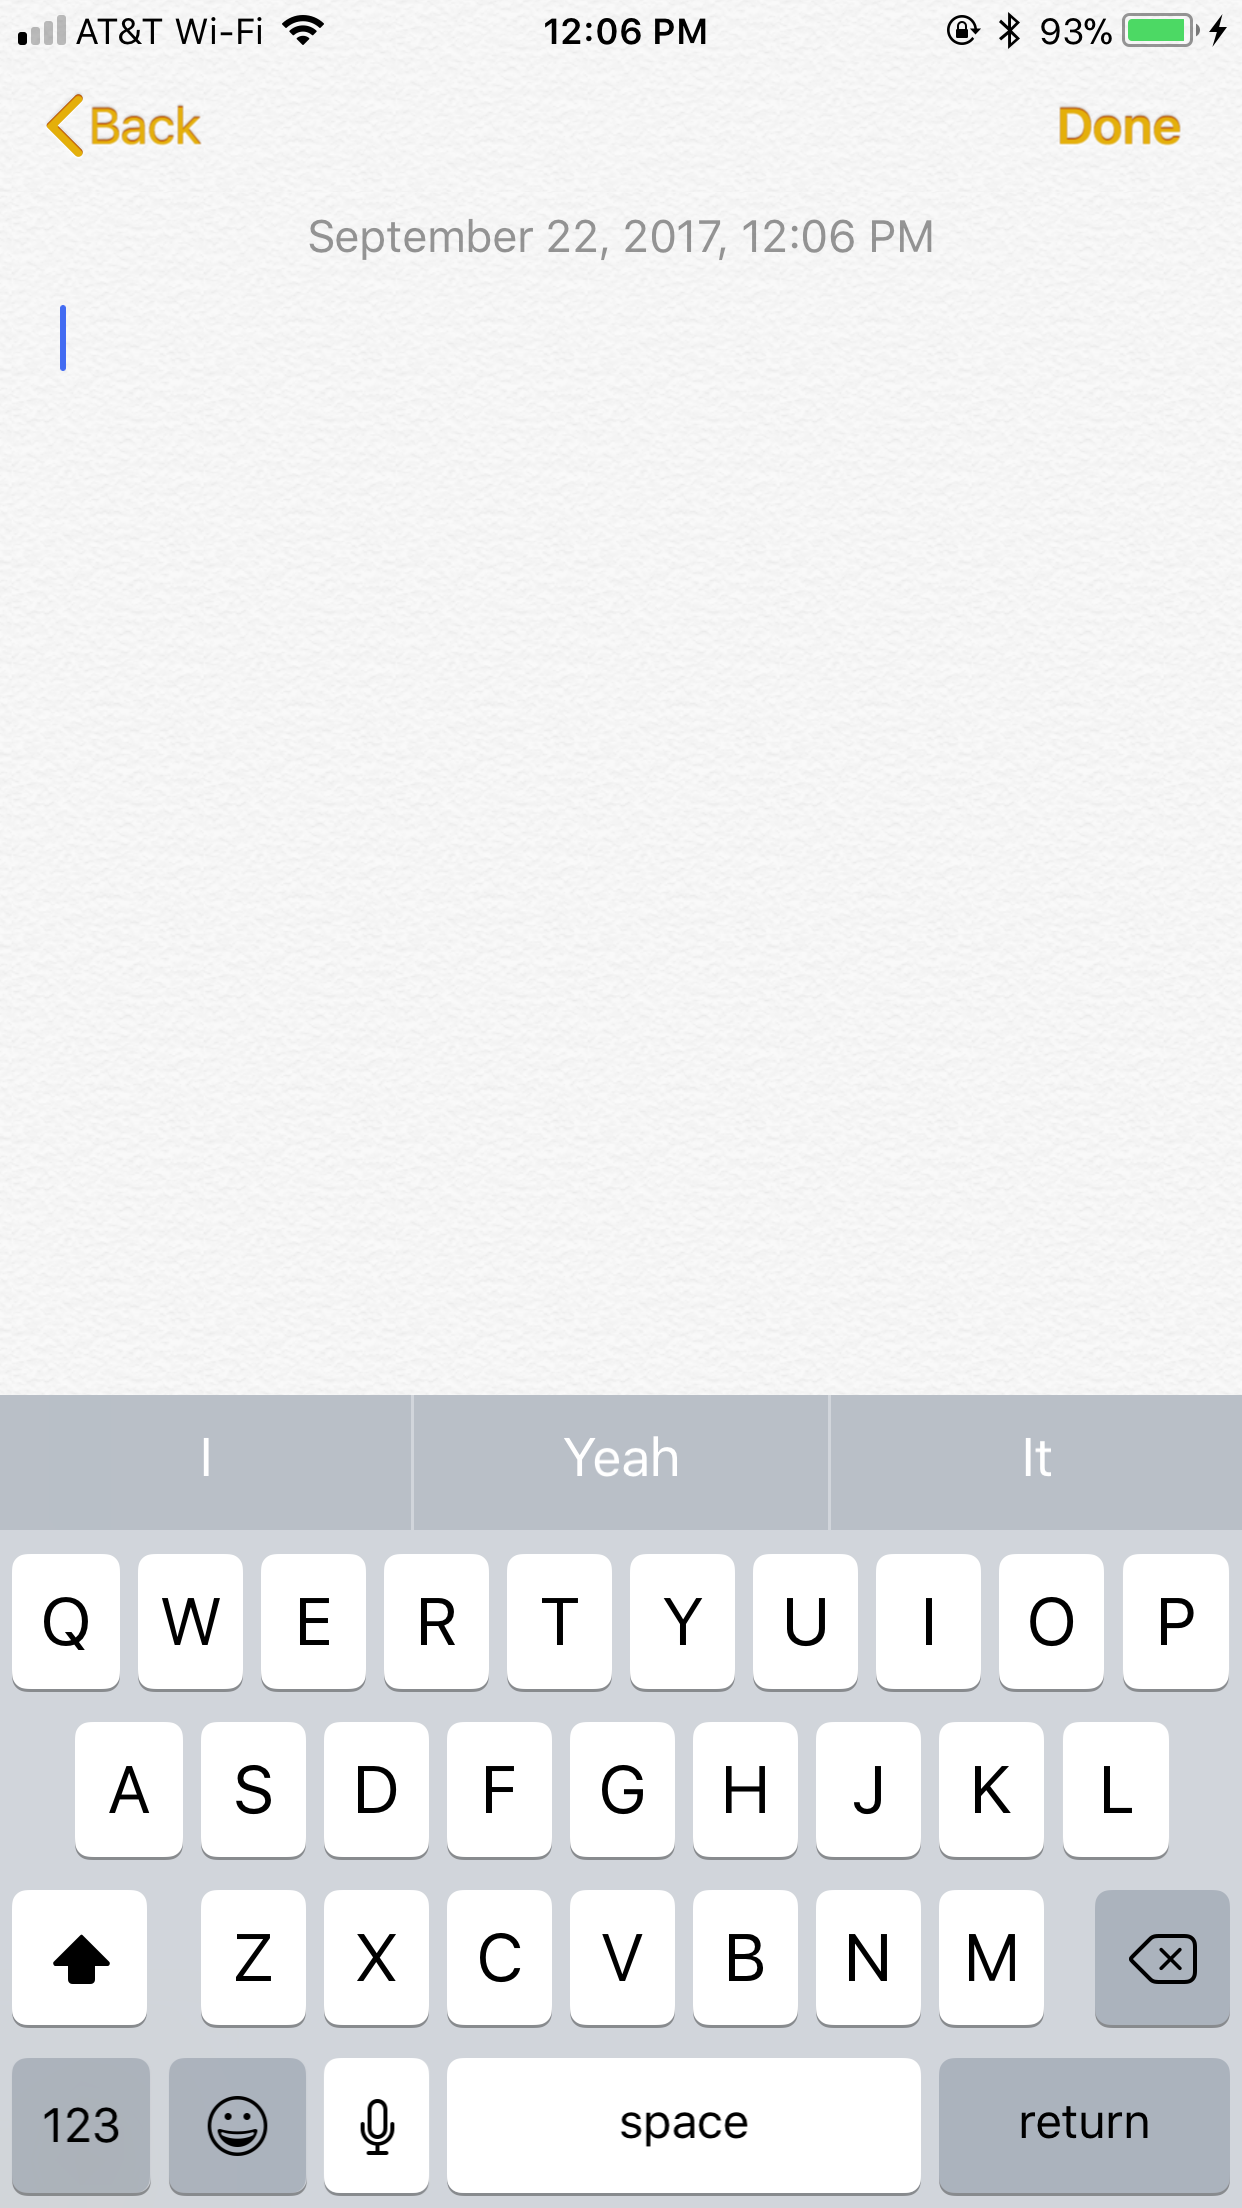 I Dont Have This Option In My Notes App After Creating A New Note On IPhone 6s IOS 11 There Is No Above The Keyboard